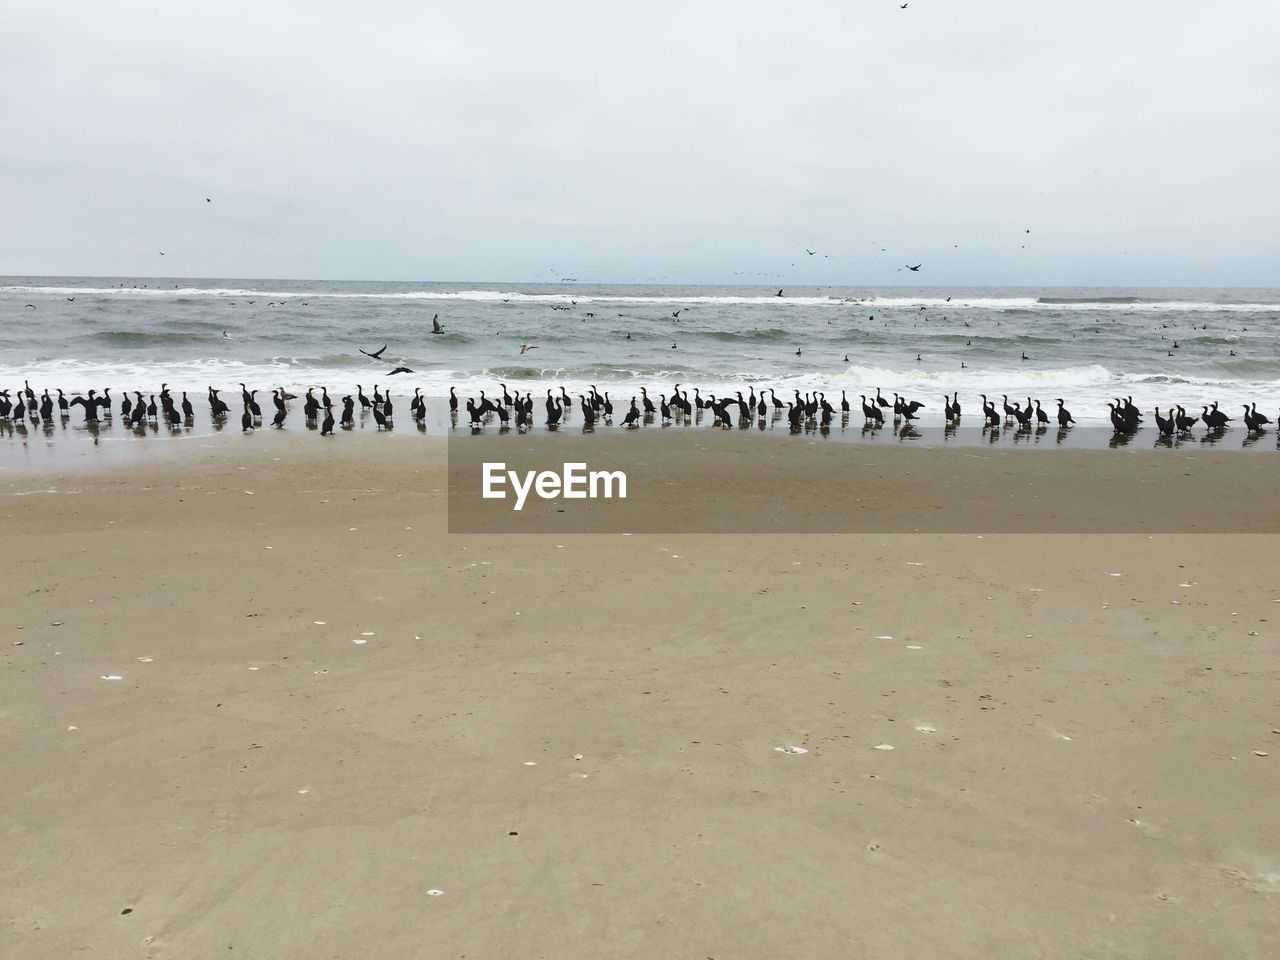 large group of animals, water, bird, sea, animals in the wild, animal themes, nature, beach, flock of birds, beauty in nature, scenics, sky, tranquility, no people, horizon over water, outdoors, animal wildlife, day, flying, flamingo, swan